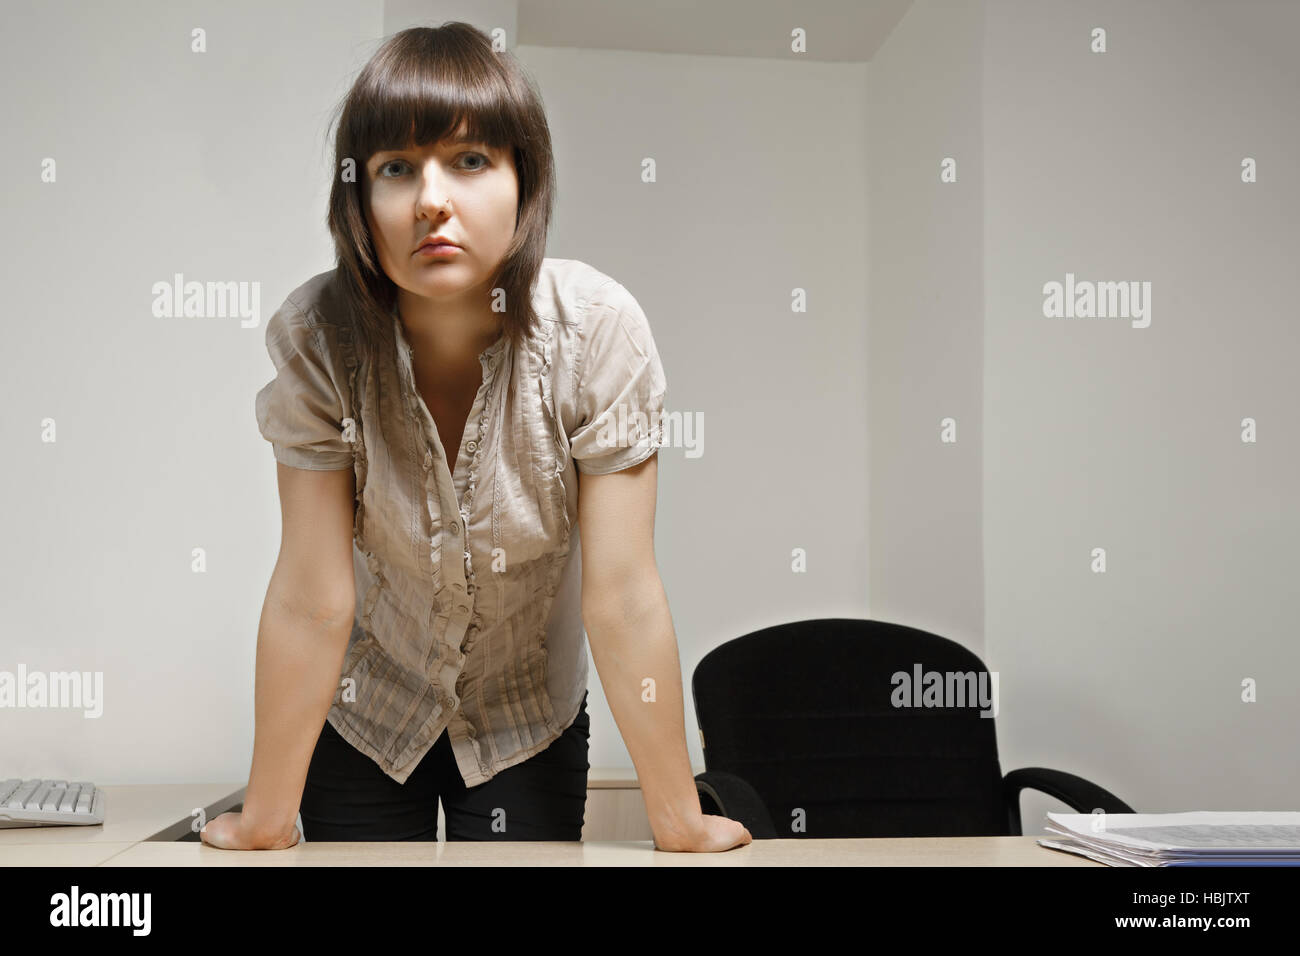 Serious clerk - Stock Image